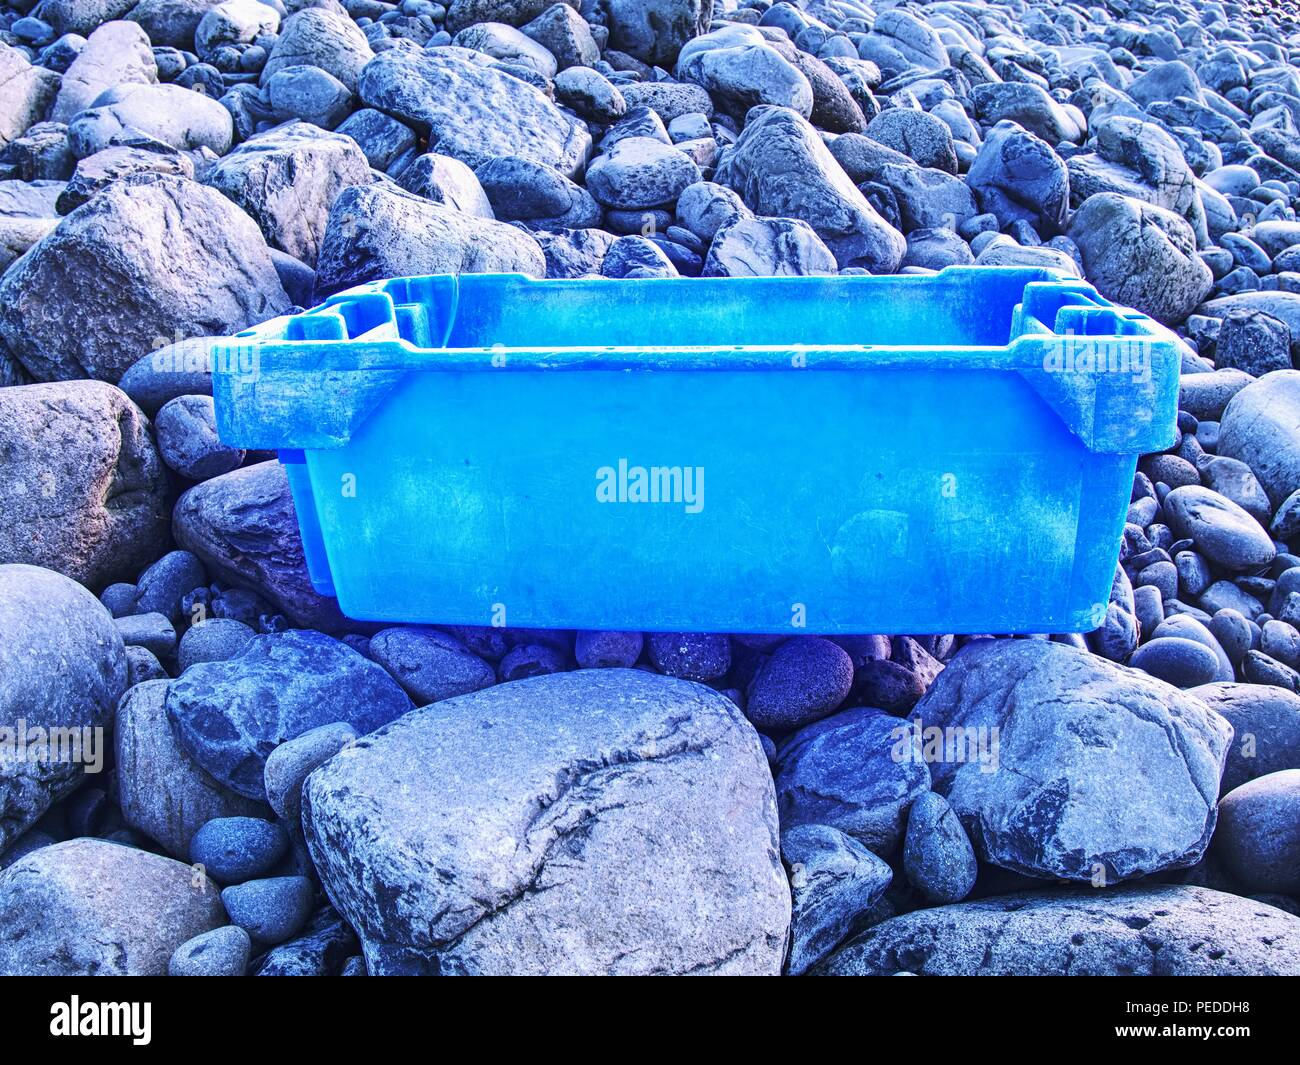 Dangerous garbage ejected from the sea on remote beaches. Environmental contamination with toxic mess. - Stock Image